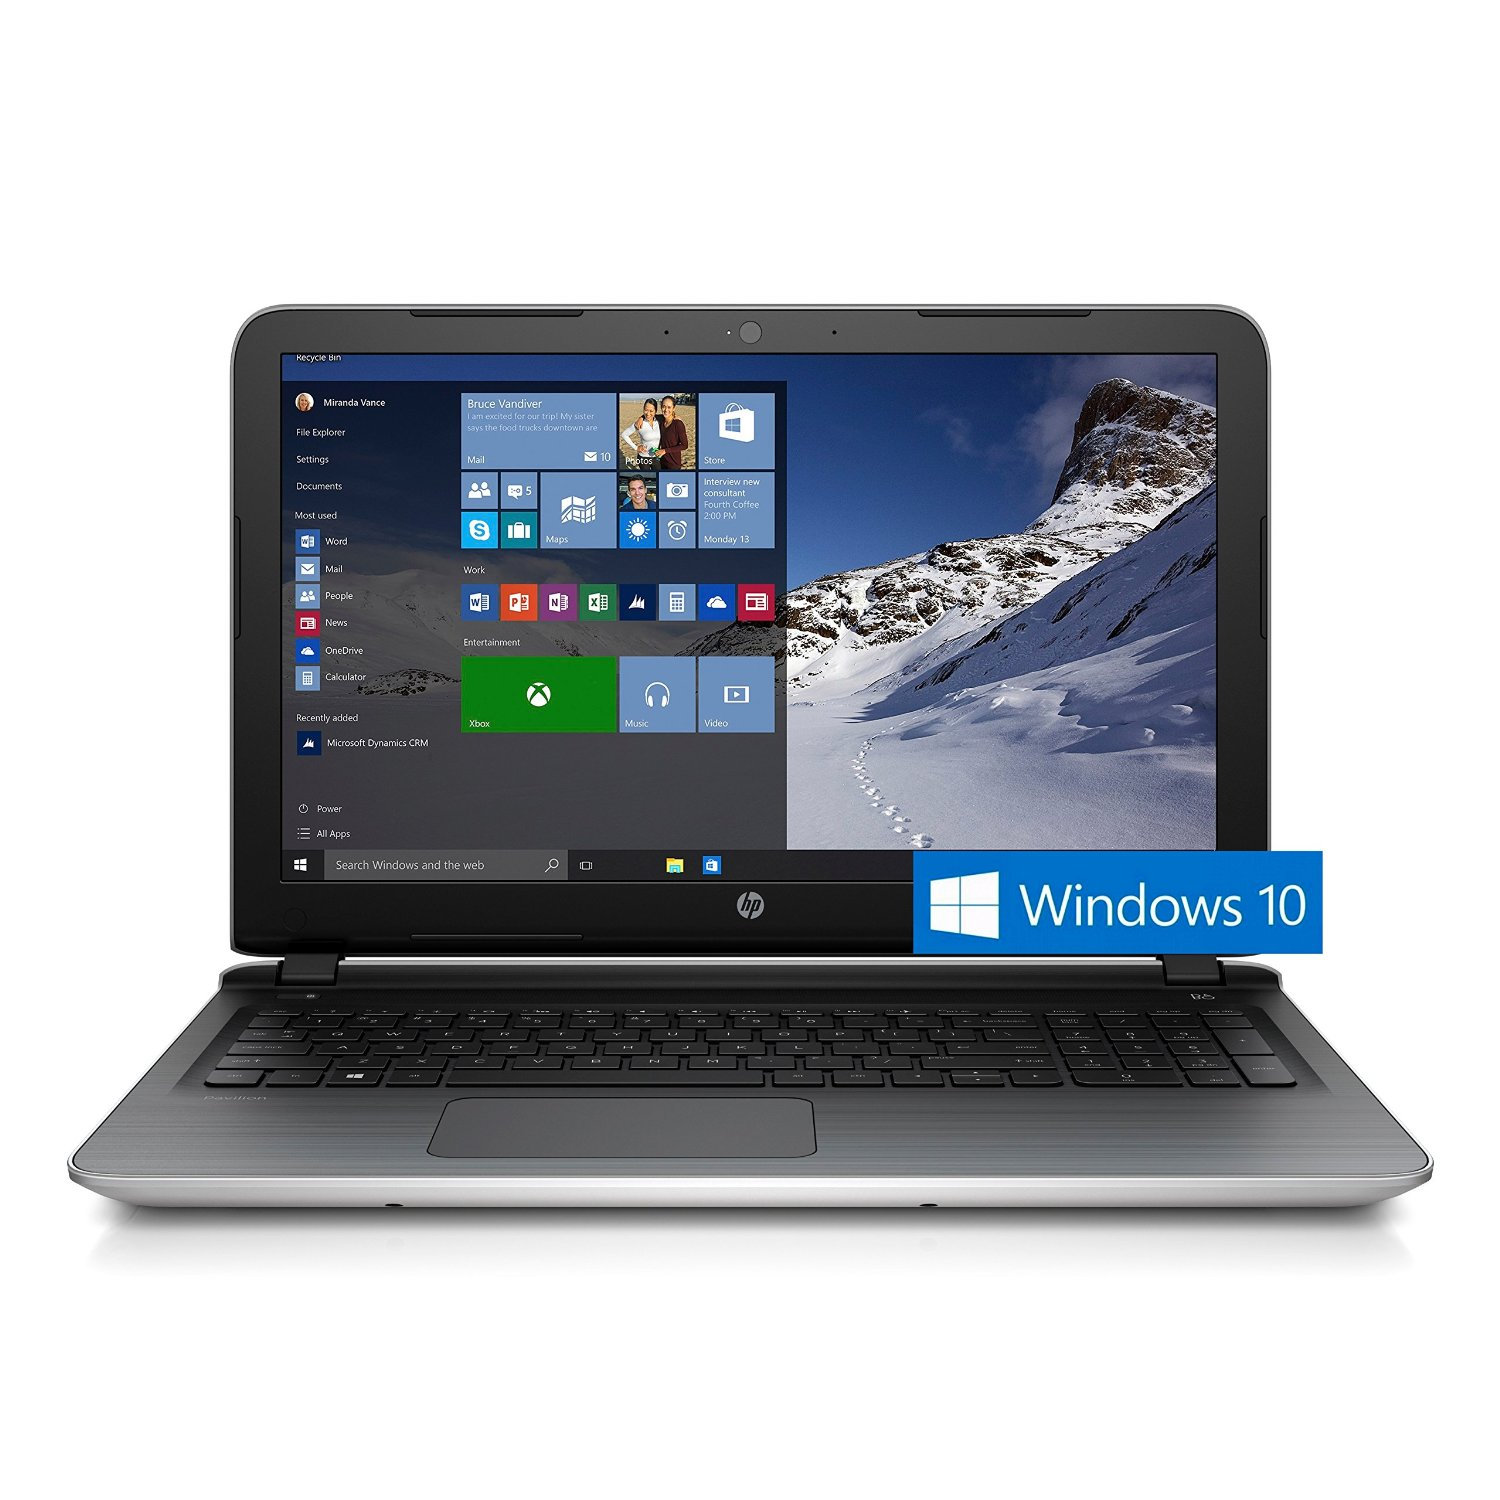 hp pavilion 17 3 laptop i3 ghz 8gb 1tb windows 10 17 g153us ebay. Black Bedroom Furniture Sets. Home Design Ideas